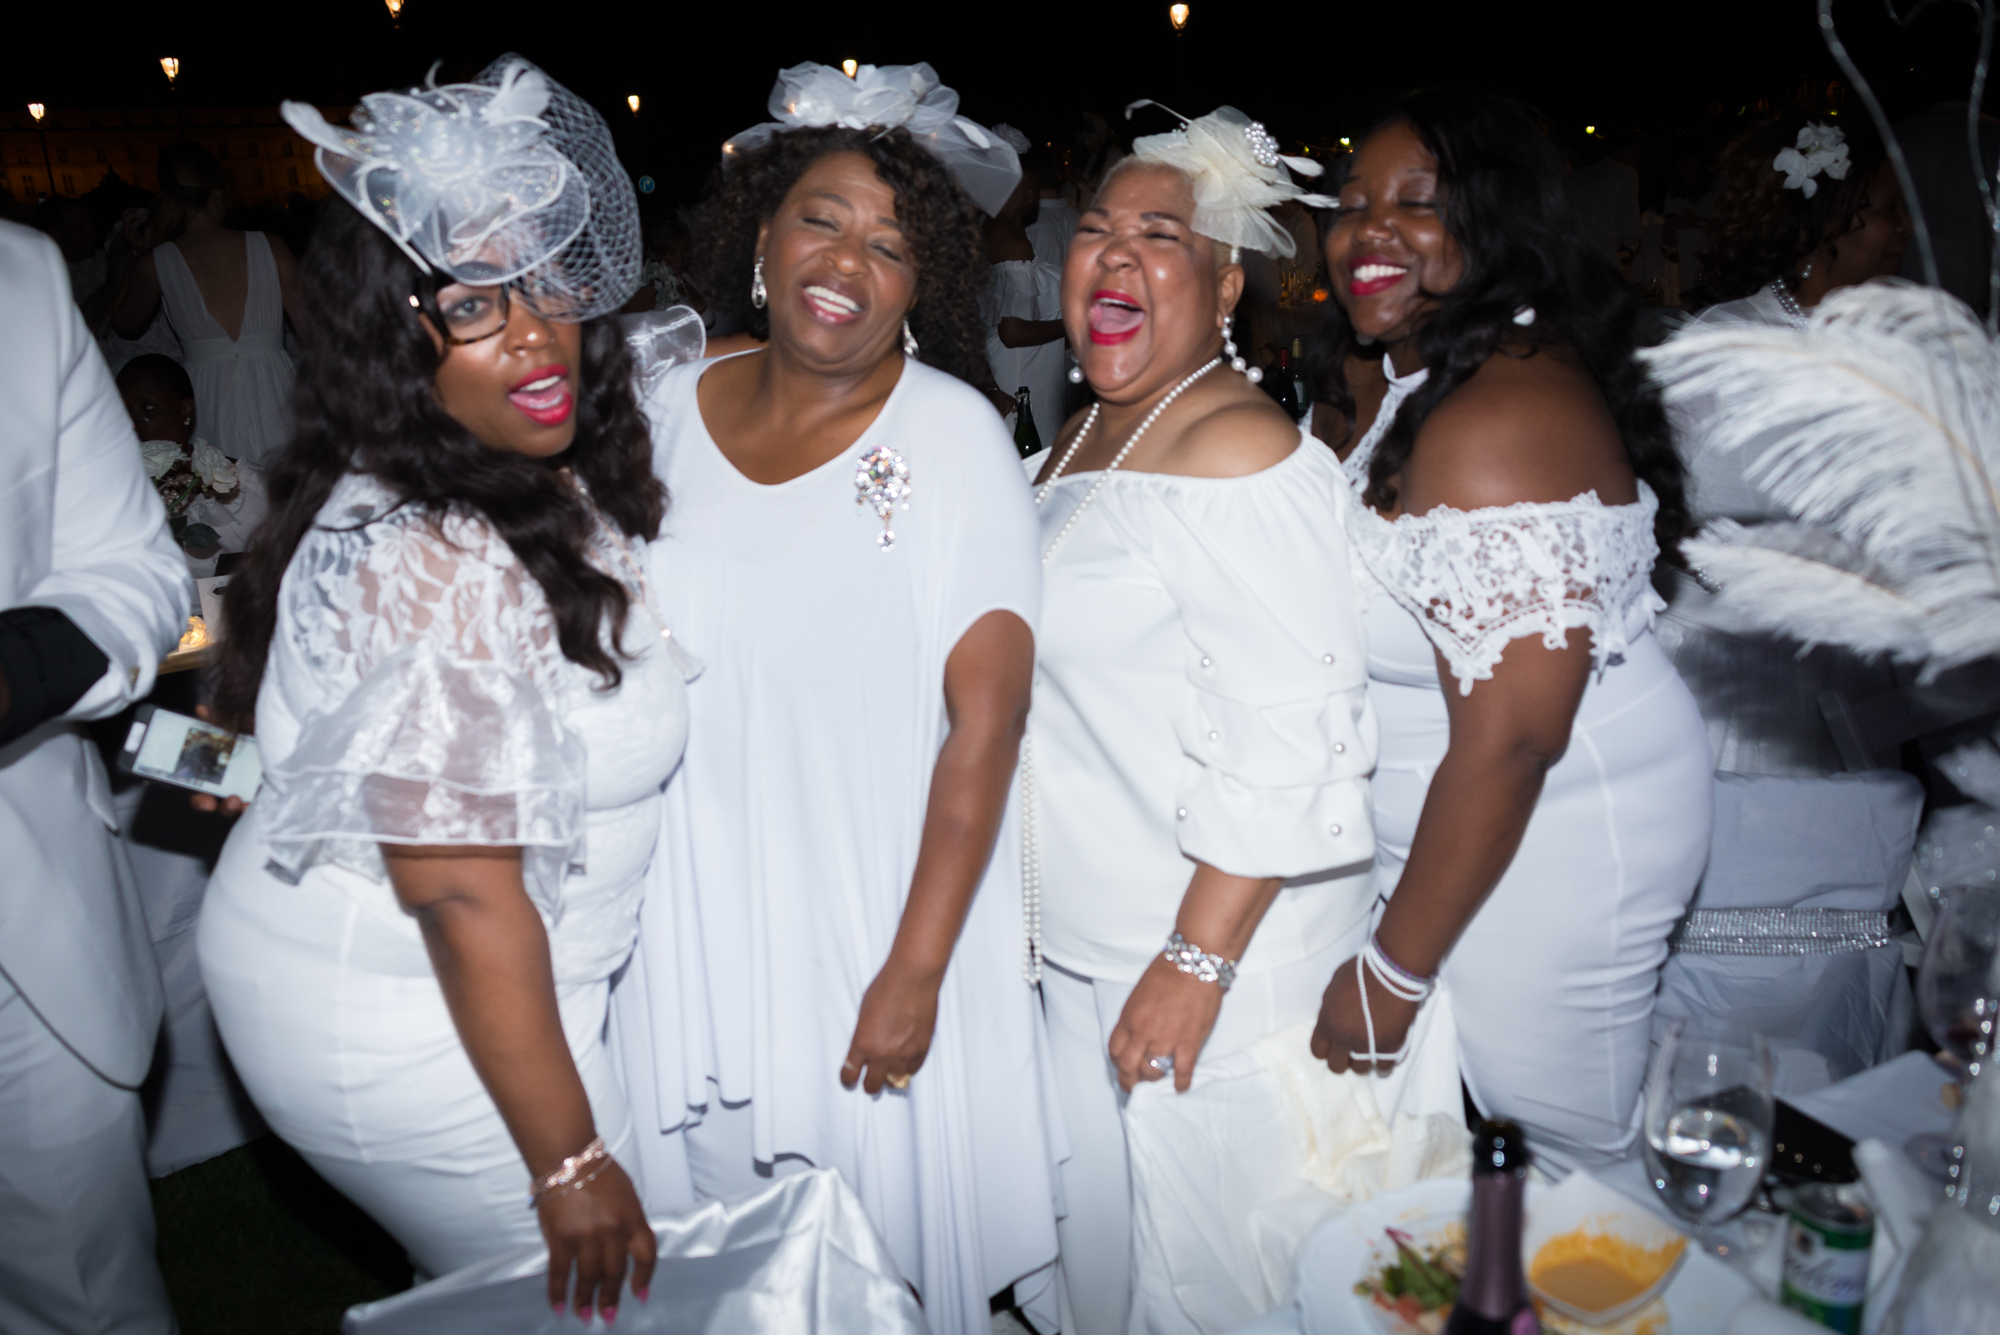 Diner en blanc Paris 2018 / African American Women / Matthieu Waddell Photo / Paris Photographer